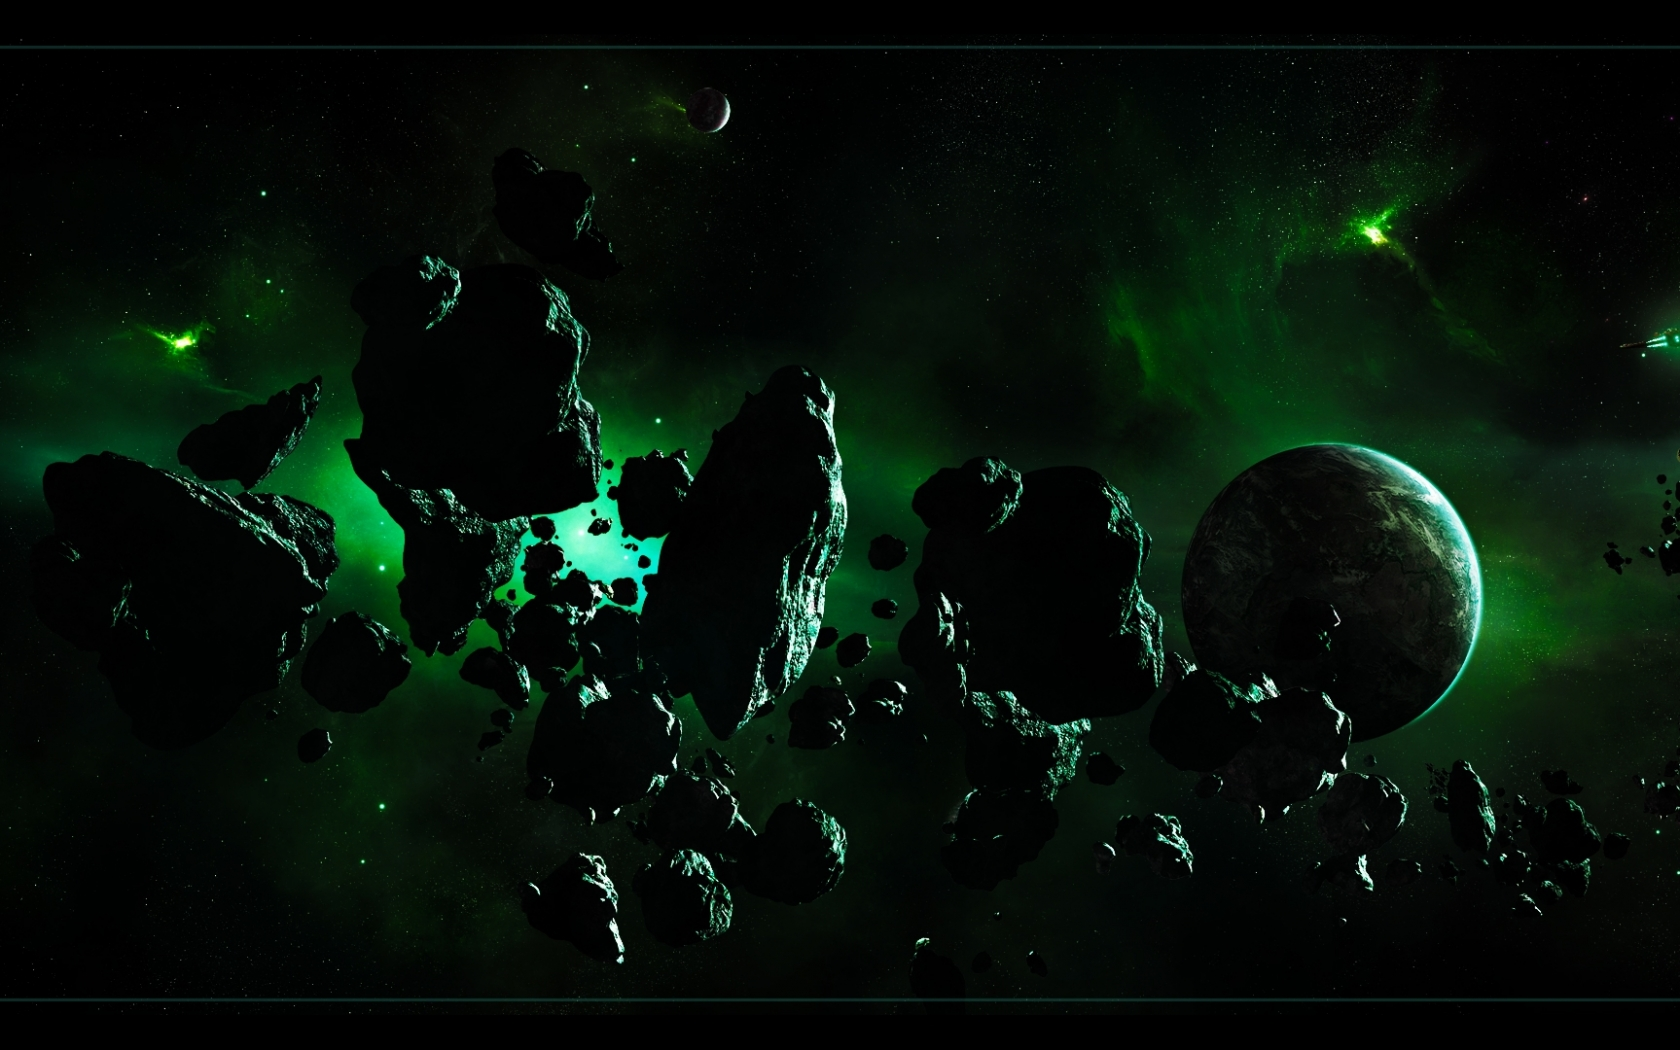 1680x1050 outer space planets dual screen 3840x1080 wallpaper download 1680x1050